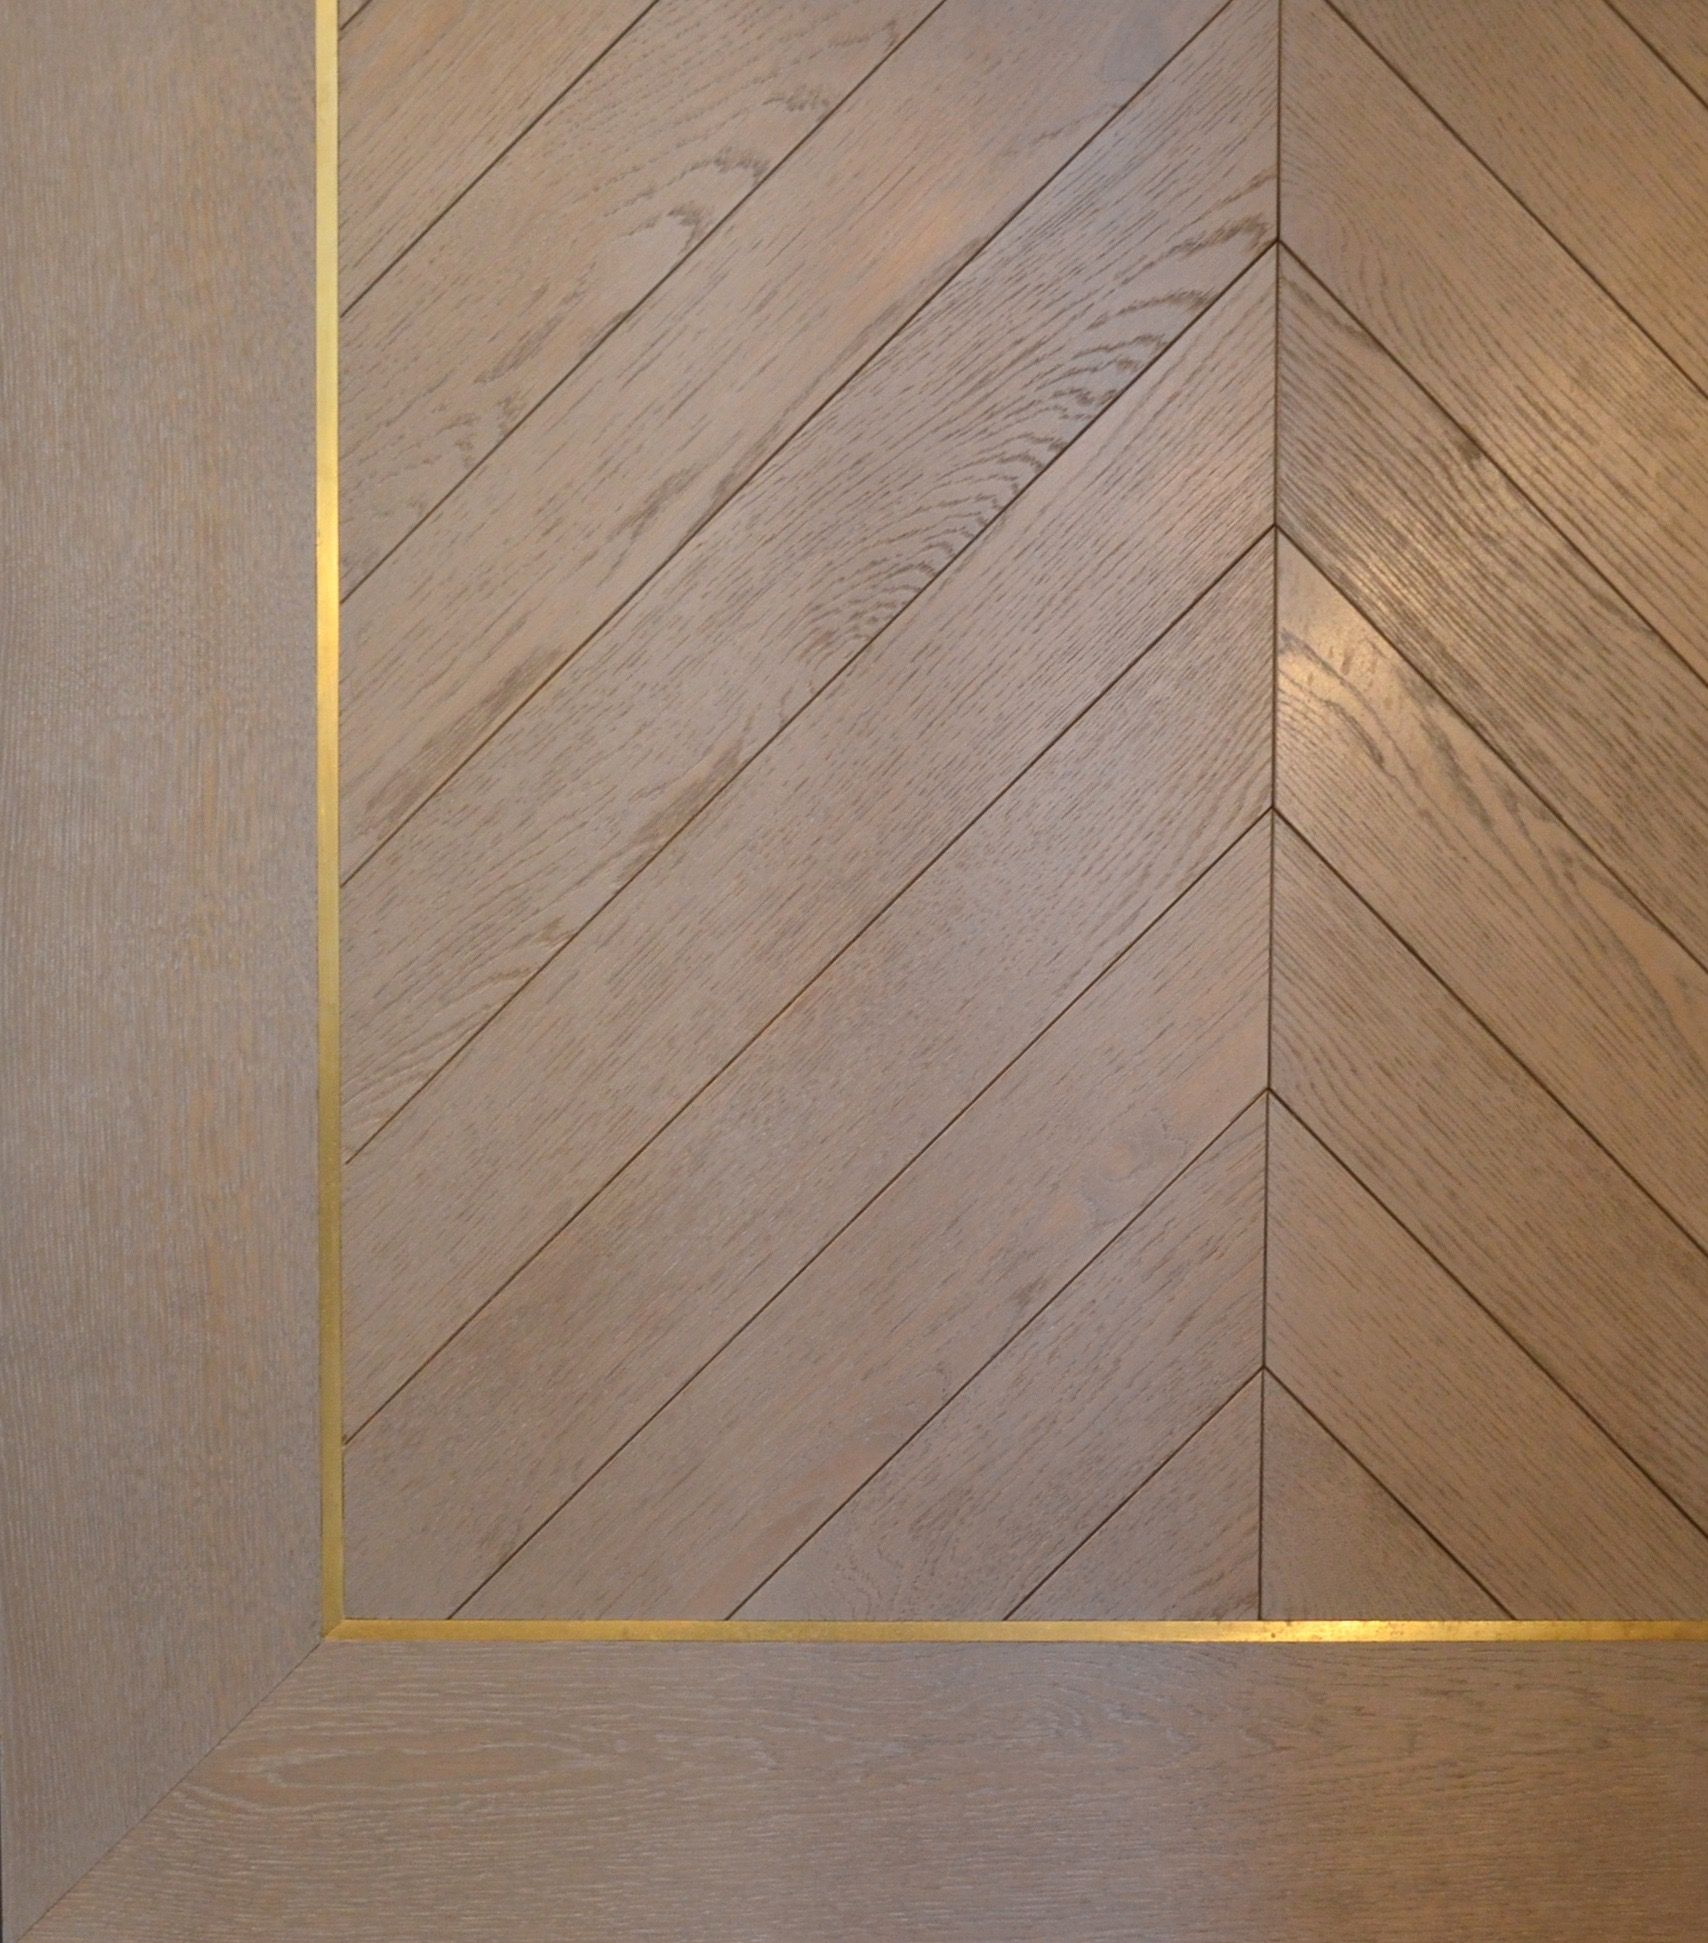 Oak Chevron Flooring with brass inlay